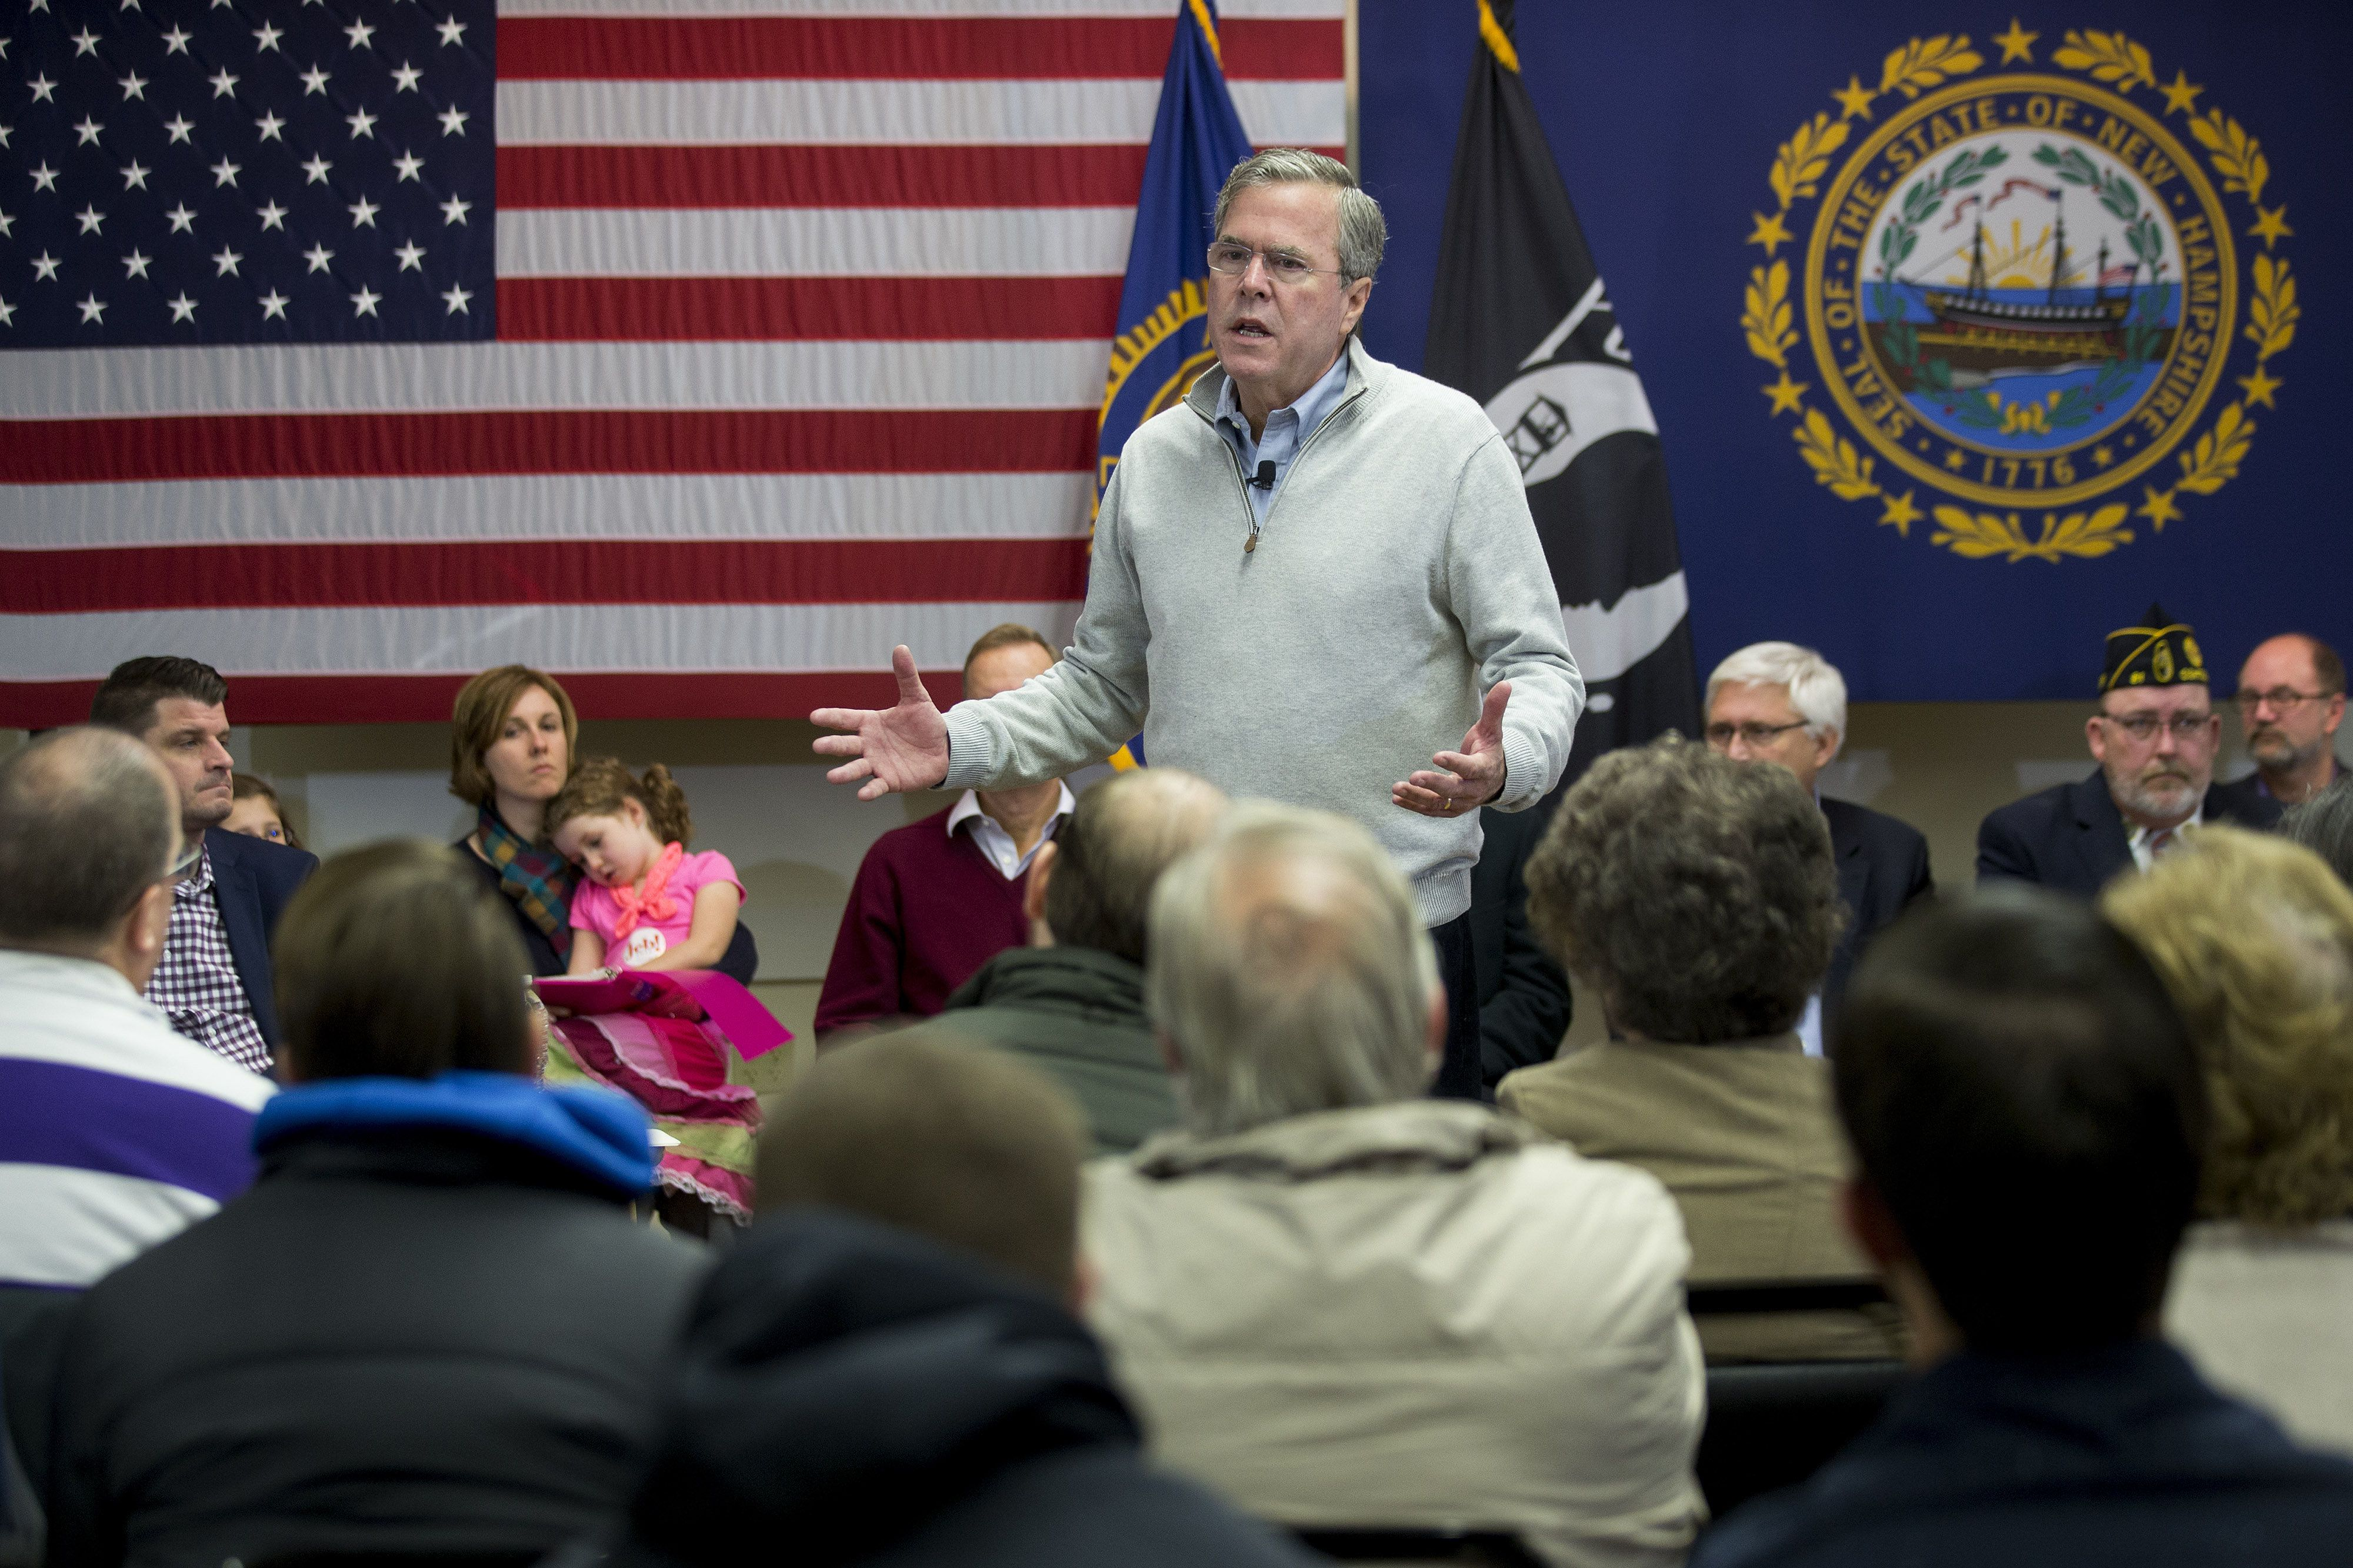 Jeb Bush, former governor of Florida and 2016 Republican presidential candidate, speaks during a town hall campaign stop at the E. Roger Montgomery American Legion Post 81 in Contoocook, New Hampshire, U.S. on Saturday, Dec. 19, 2015. At Tuesday's presidential debate this week Bush lobbed six full-frontal assaults on front-runner Donald Trump, who he at one point dubbed Trump a 'chaos candidate.' Photographer: Andrew Harrer/Bloomberg via Getty Images